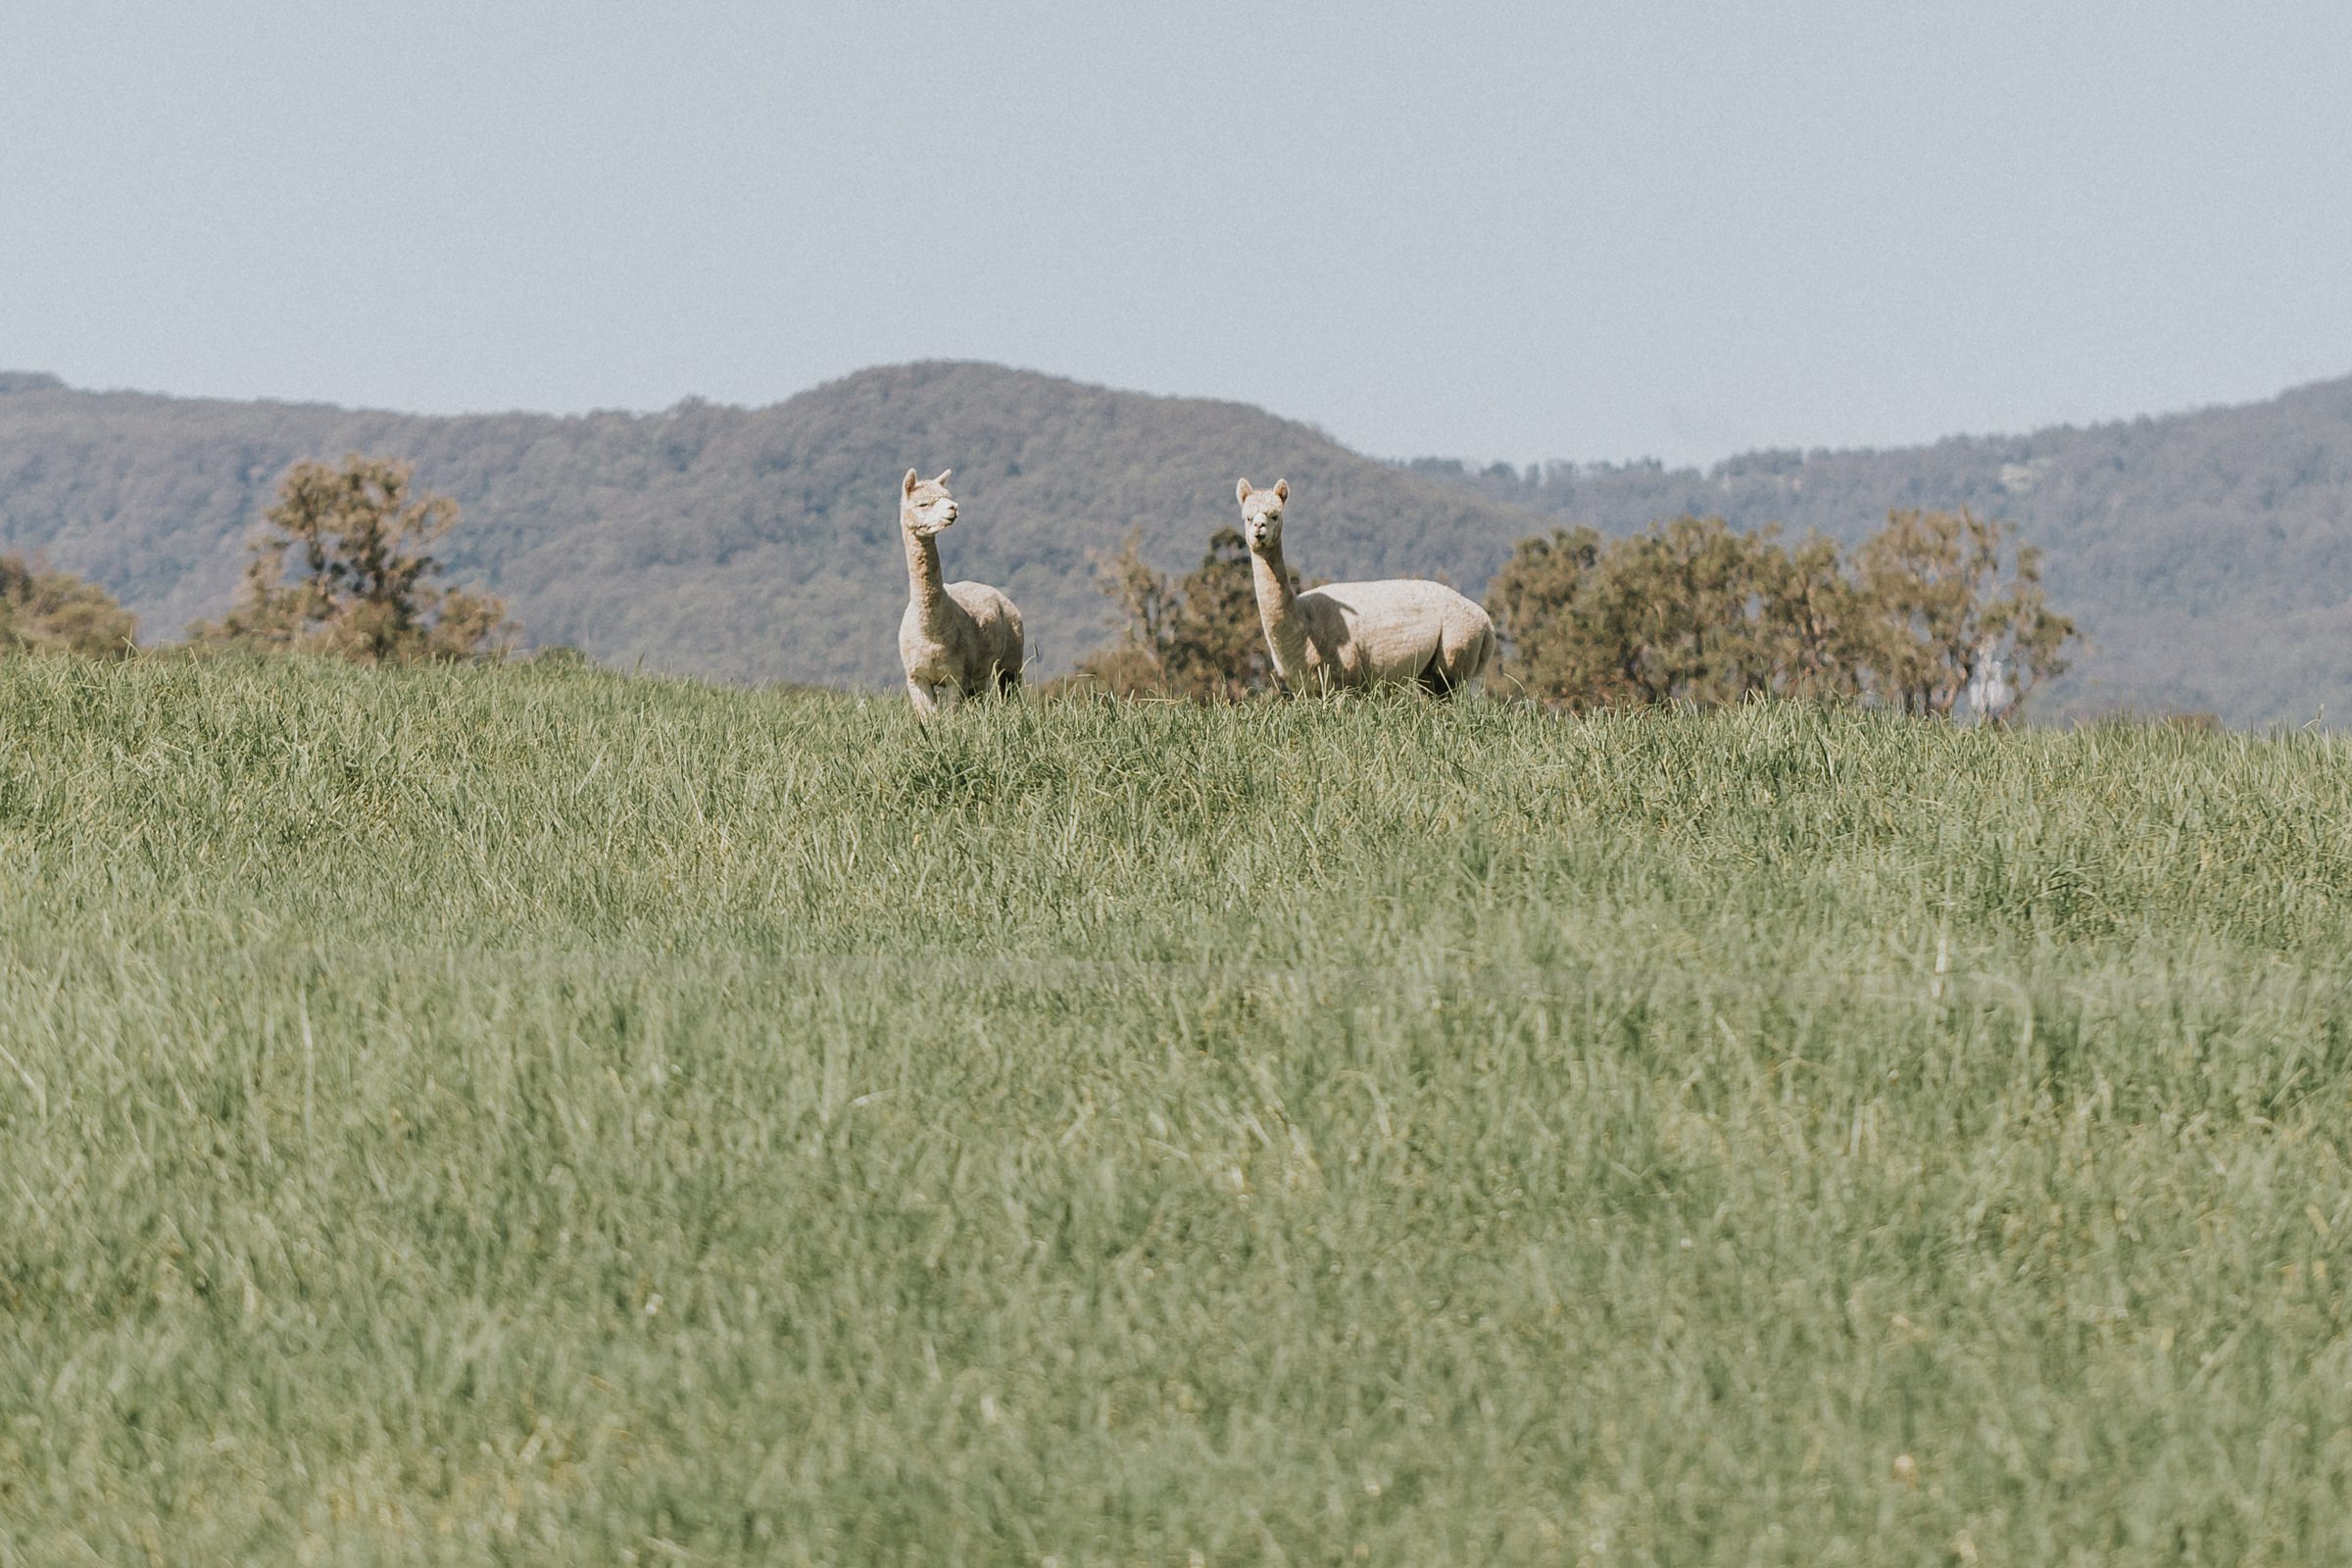 alpacas in kangaroo valley on wedding day